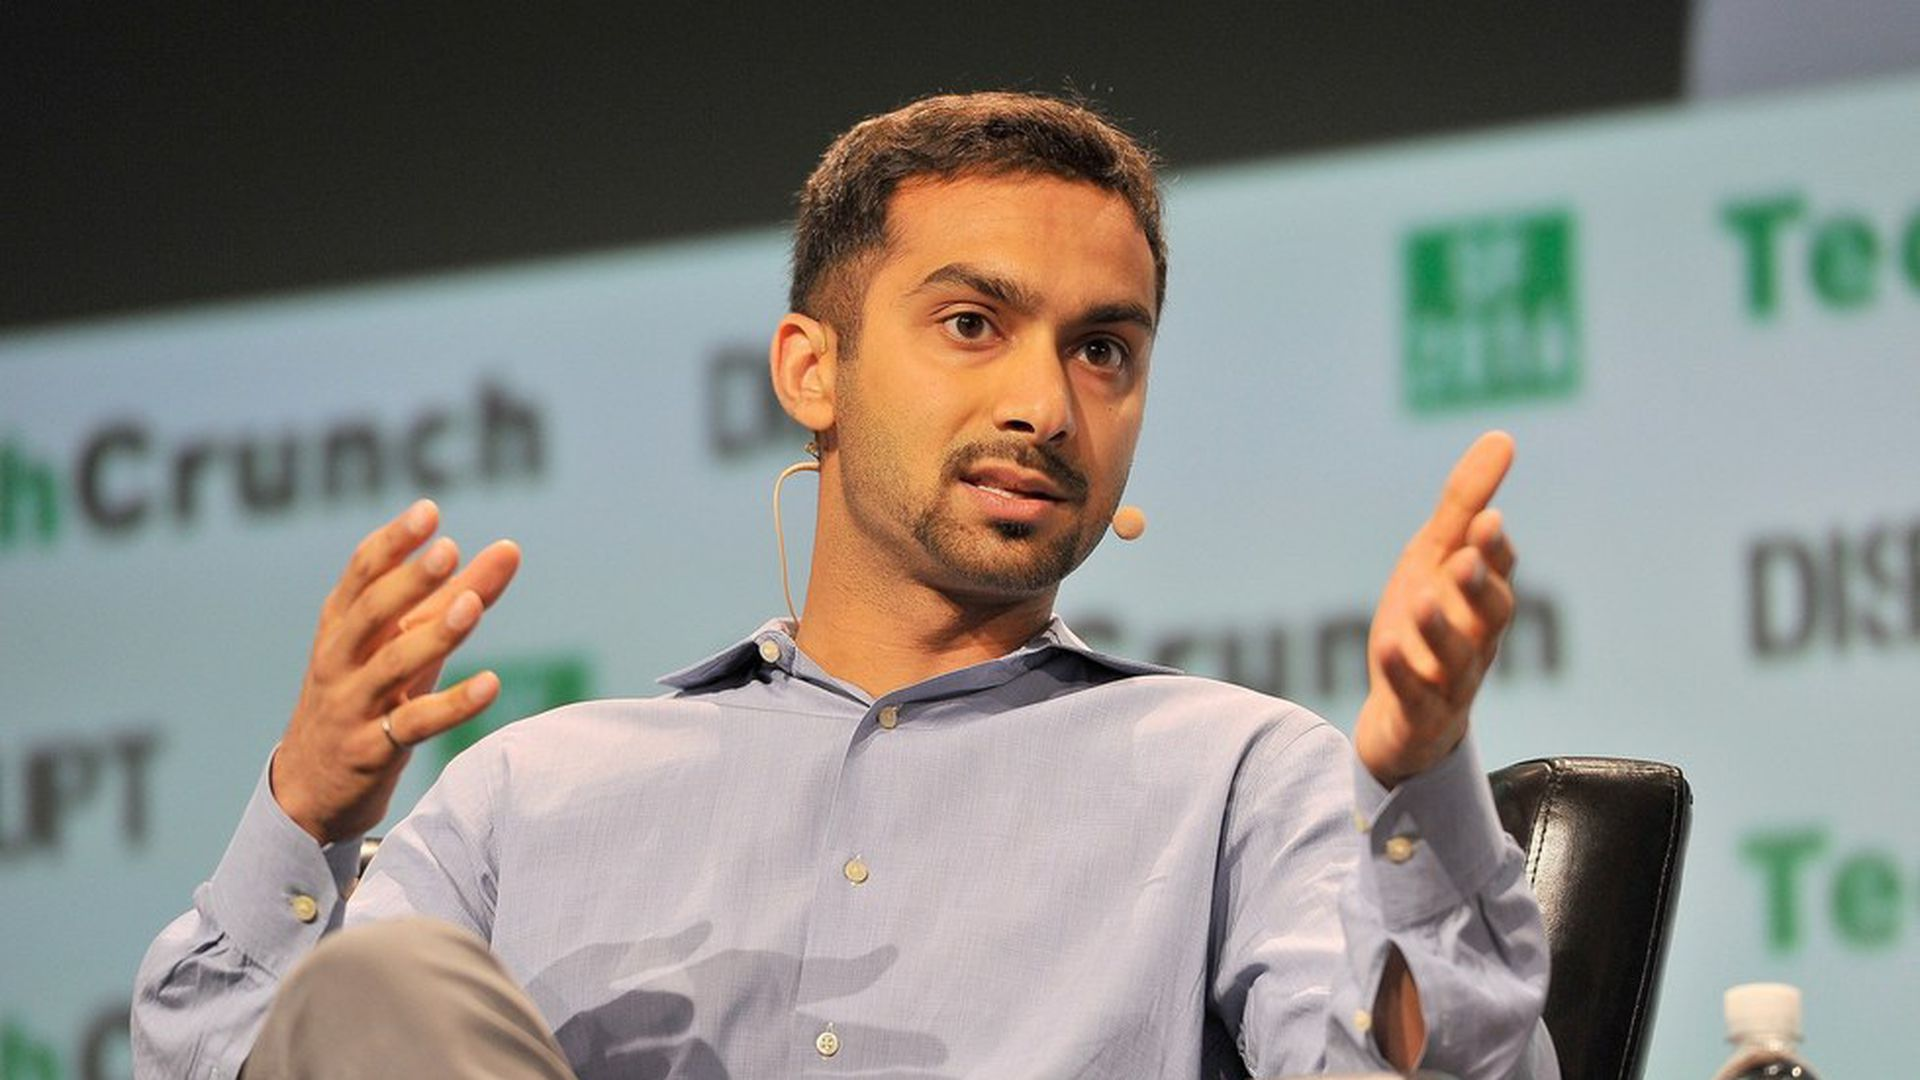 Instacart is surviving the Amazon-Whole Foods deal just fine